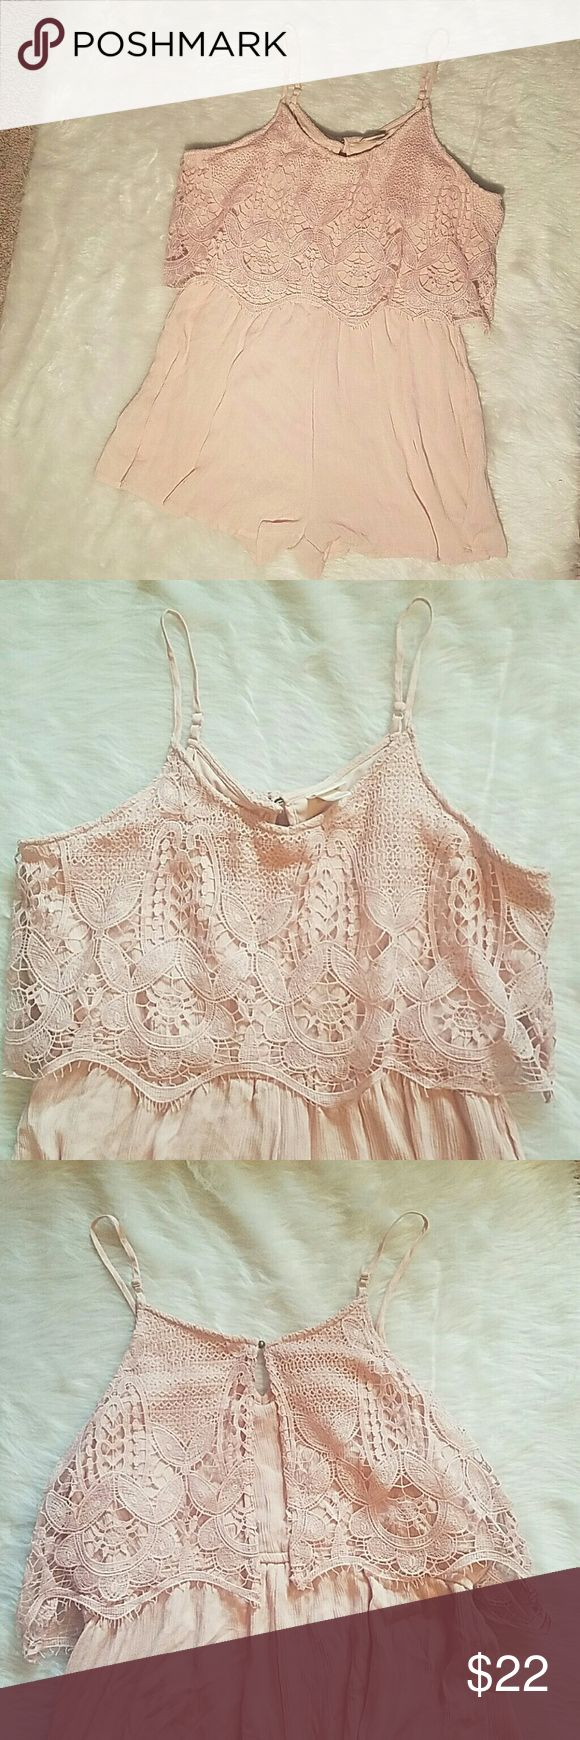 NWOT dusty rose color Romper NWOT dusty rose color Rompers with adjustable shoulder straps, lace bodice is 100% polyester, bottom is 100% rayon, fully lined Shorts